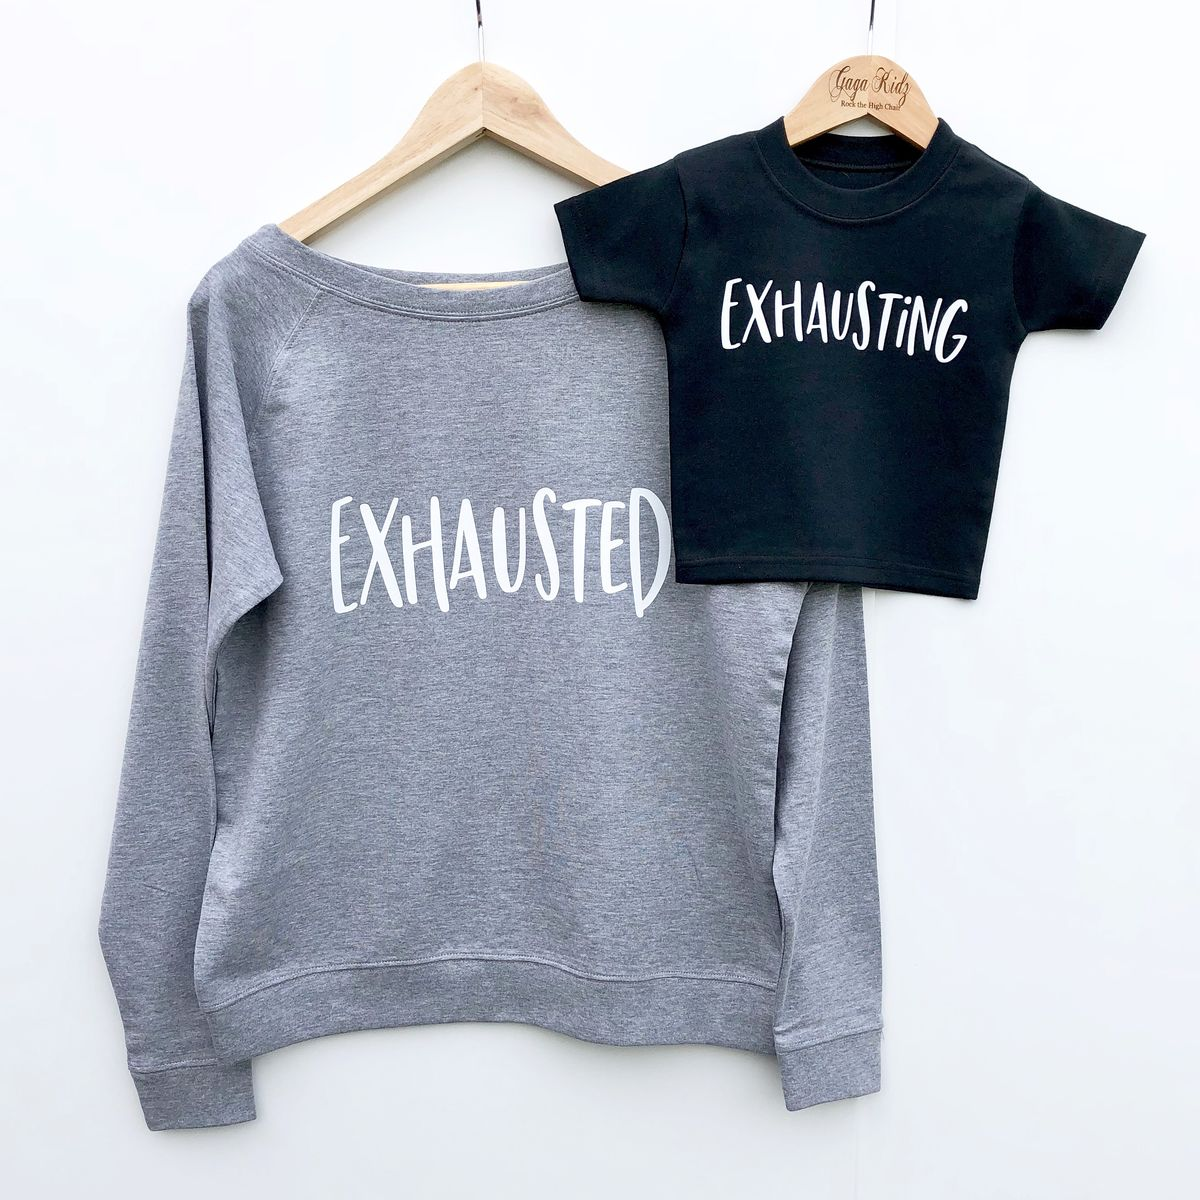 'Exhausting' Black & White Kids T-Shirt (various sizes) - product images  of